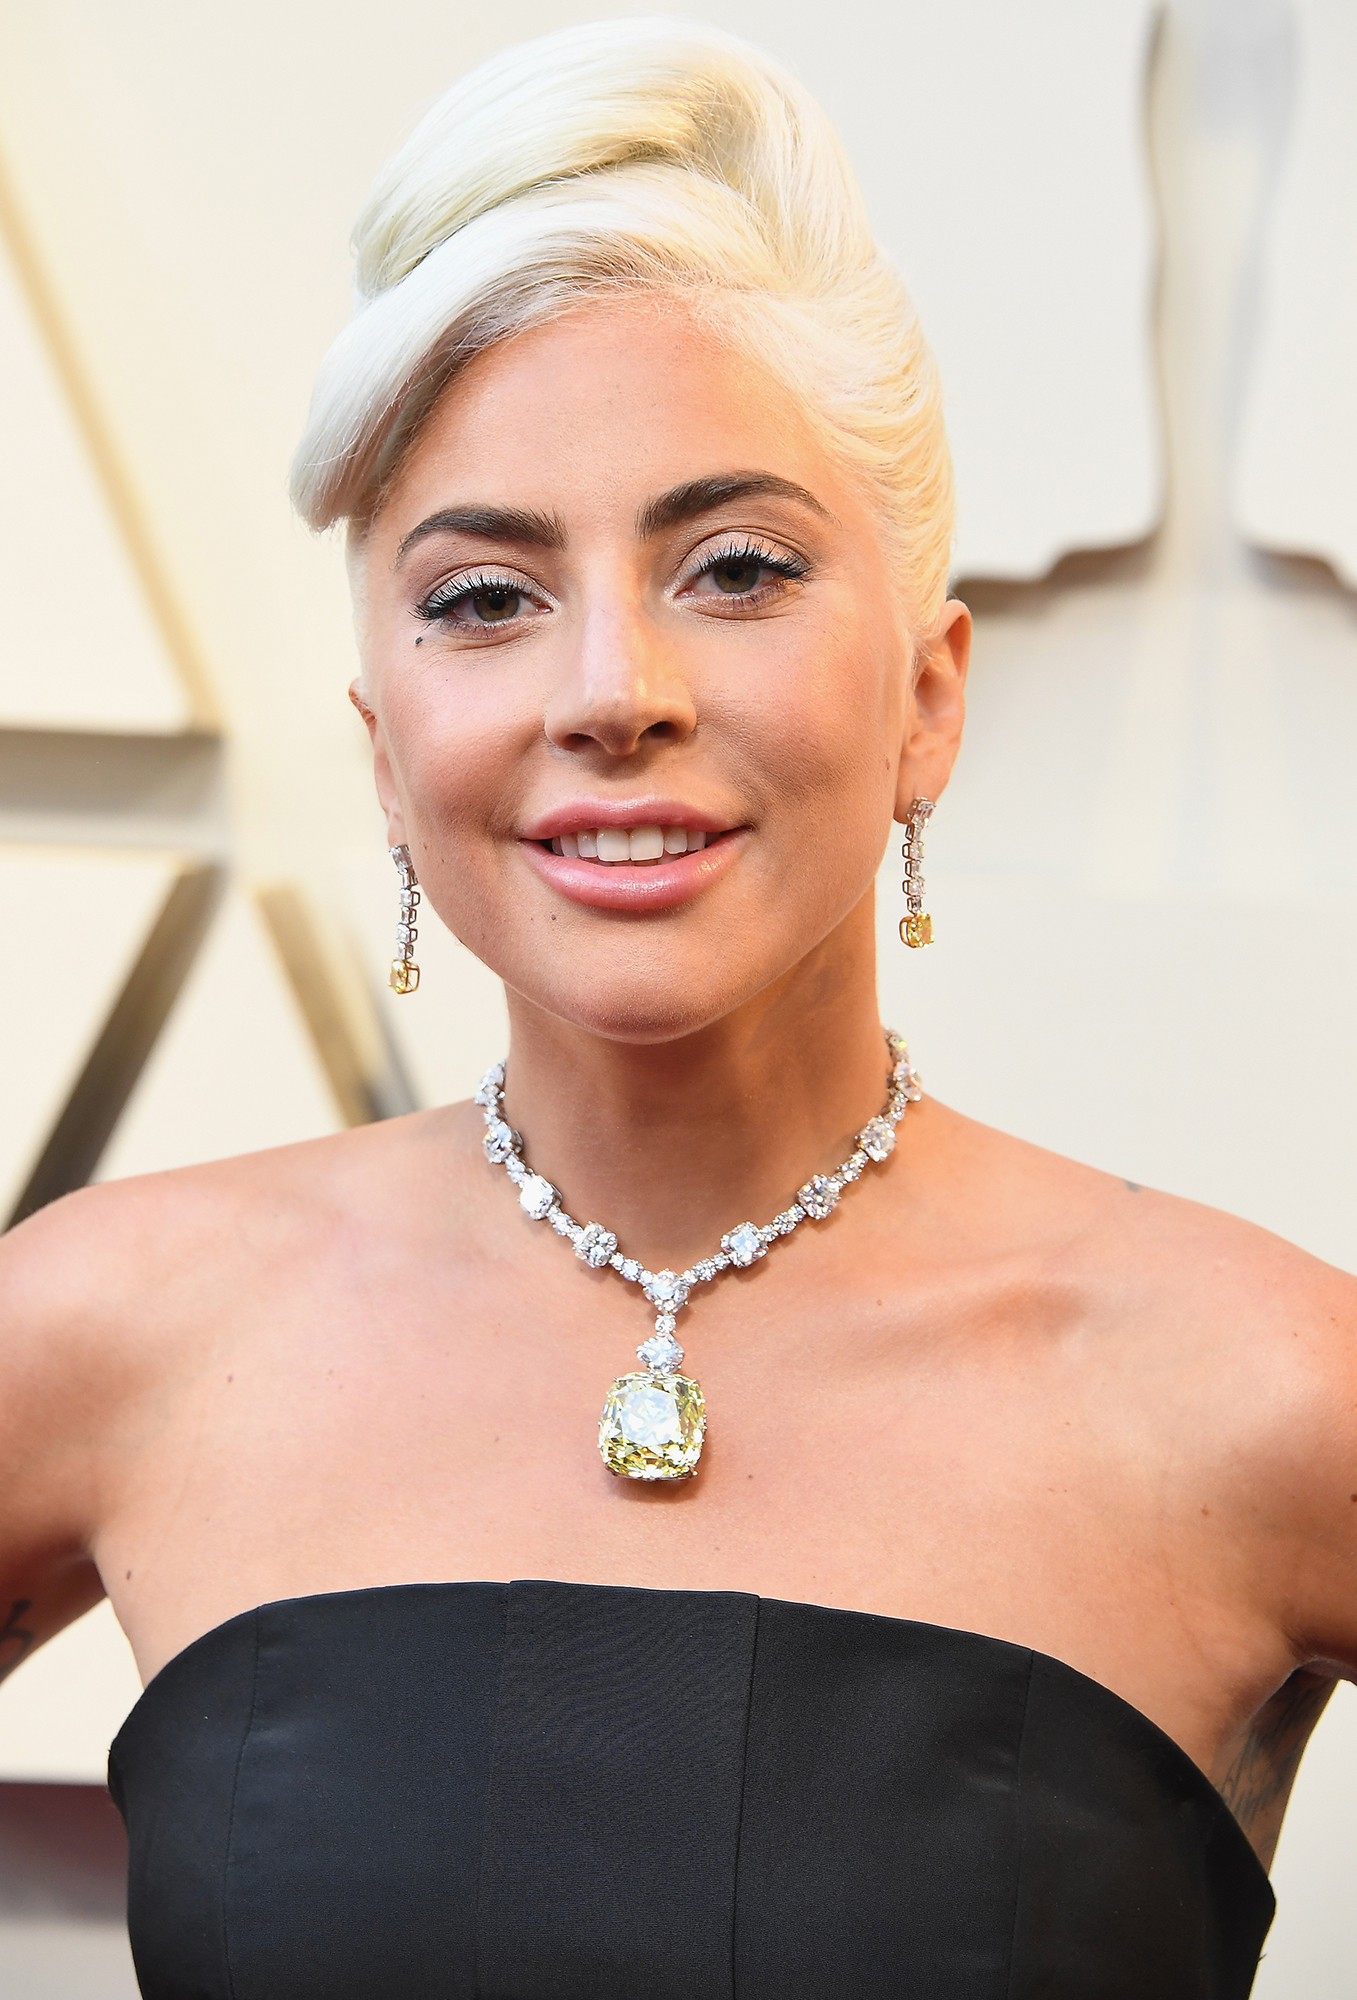 """Celebrities Who Own Restaurants: Jay-Z, Ryan Gosling, Armie Hammer and More - The Oscar winner's parents, Joseph and Cynthia Germanotta, opened Joanne Trattoria on Manhattan's Upper West Side with chef/cookbook author Art Smith in 2012, and Gaga is a silent partner in the restaurant. The eatery, which is named after the """"Bad Romance"""" singer's deceased aunt, serves traditional Italian fare, and the Grammy winner has been known to pop by on occasion, much to customers' delight."""